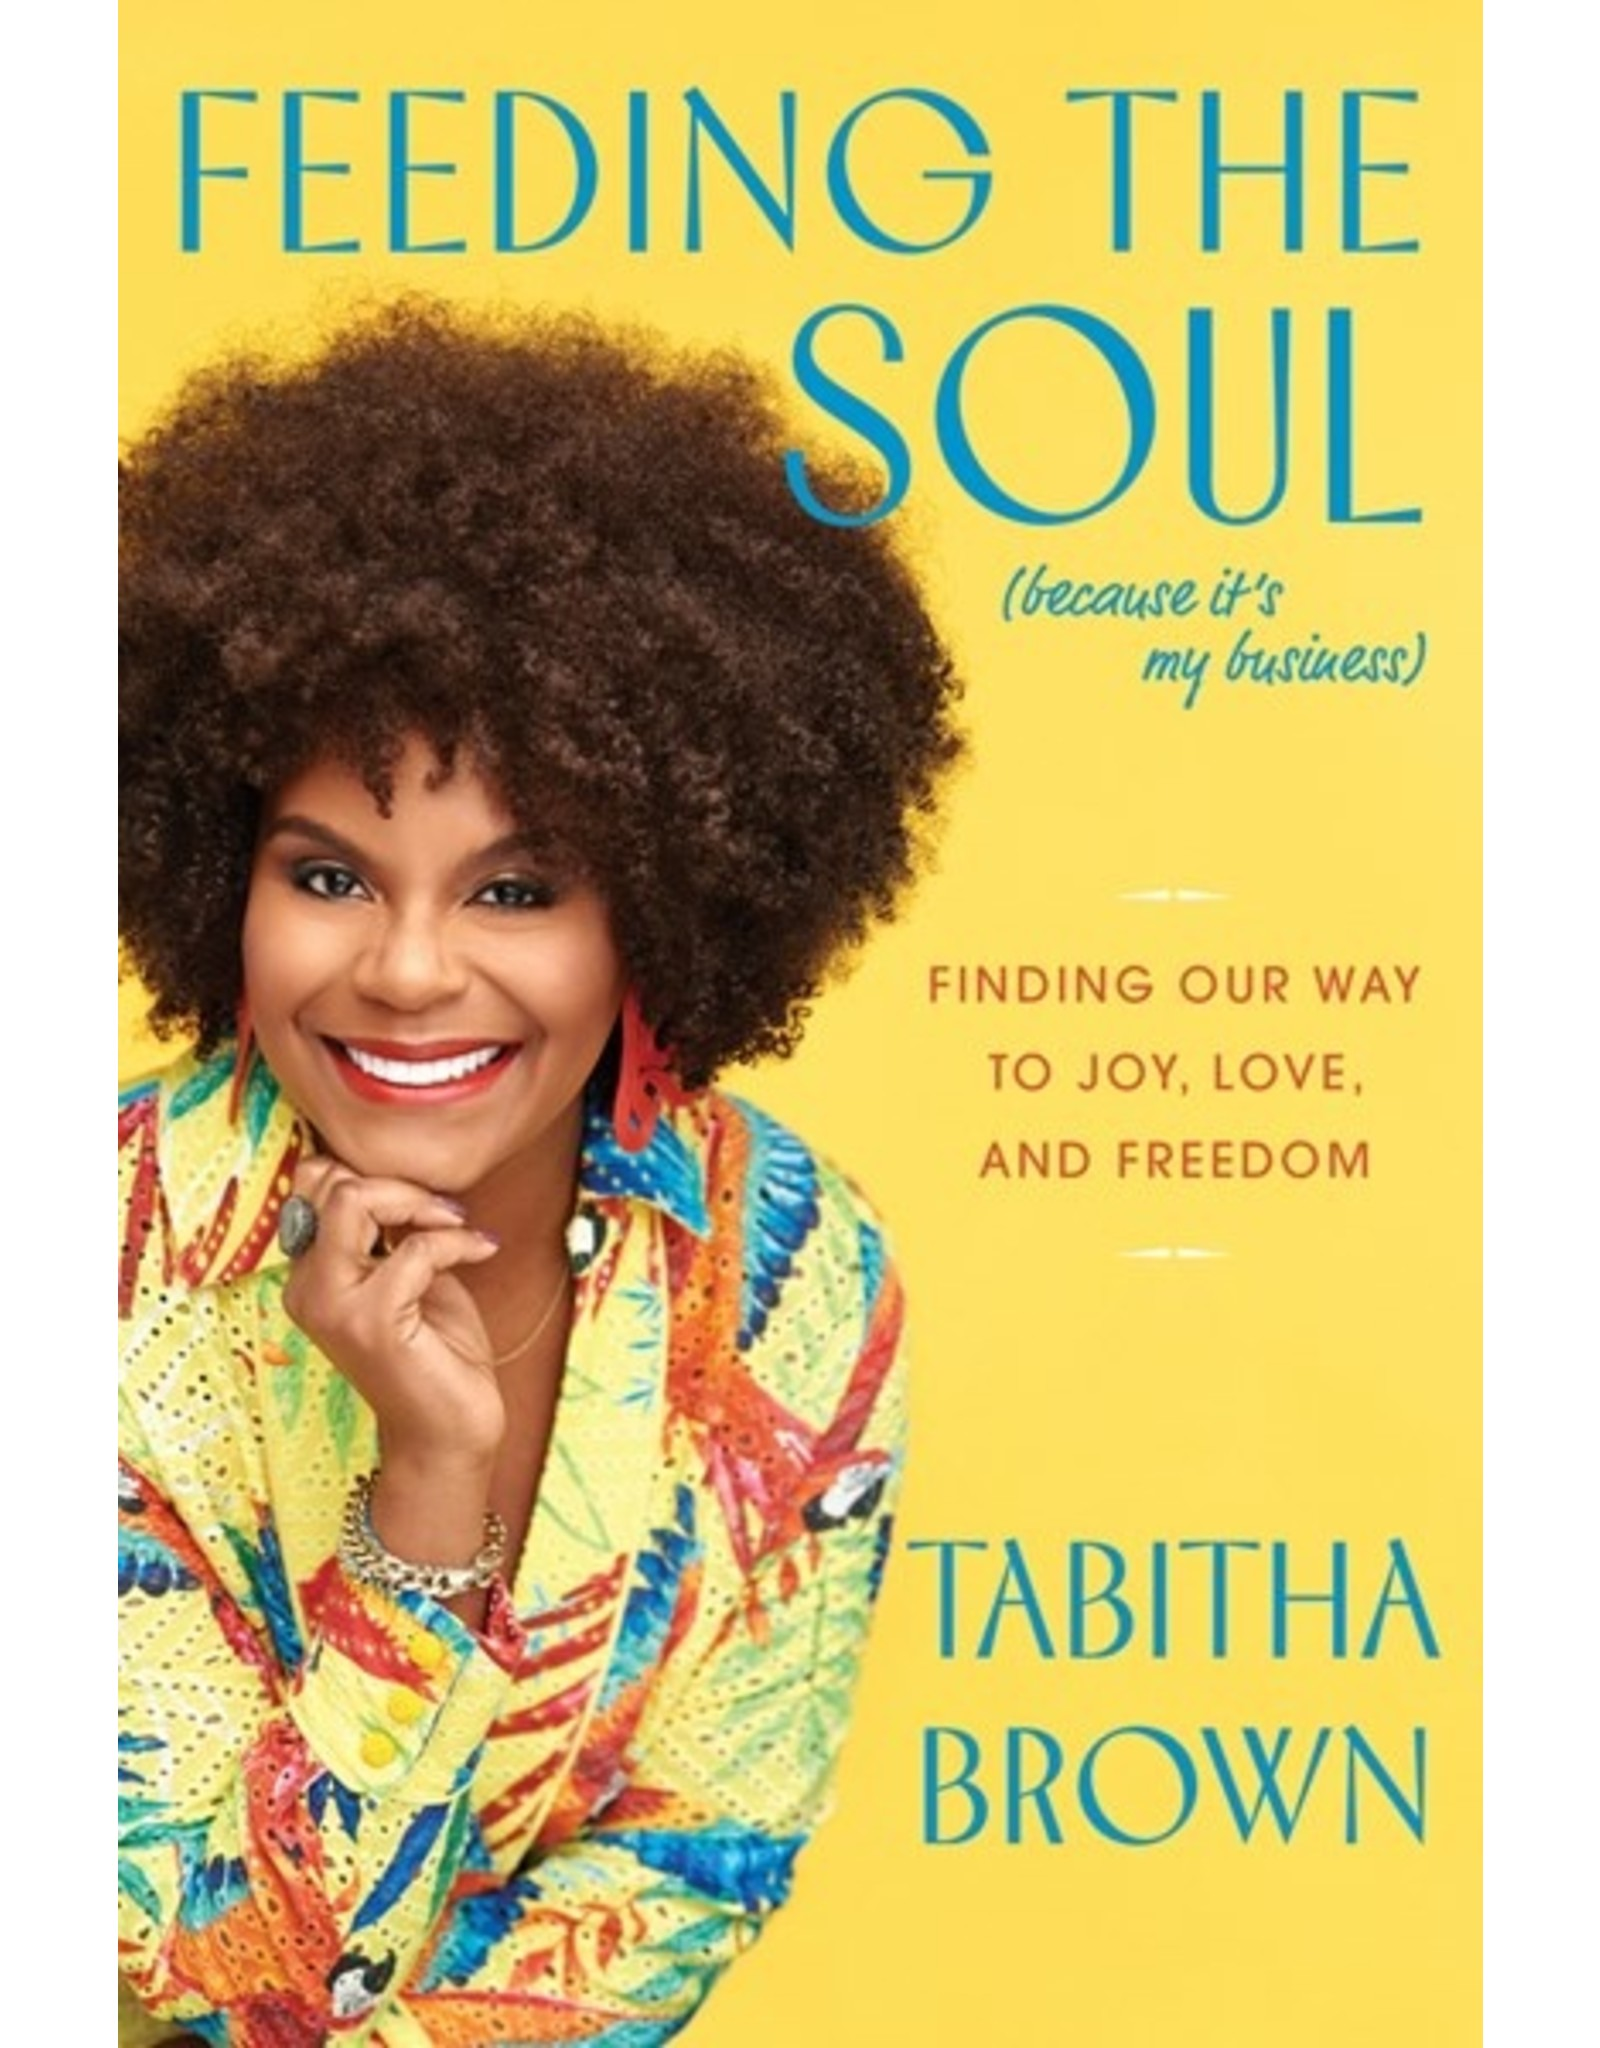 Books Feeding the Soul (Because It's My Business) : Finding Our Way to Joy, Love, and Freedom  by Tabitha Brown (Signed Copies) (Pre-Order)